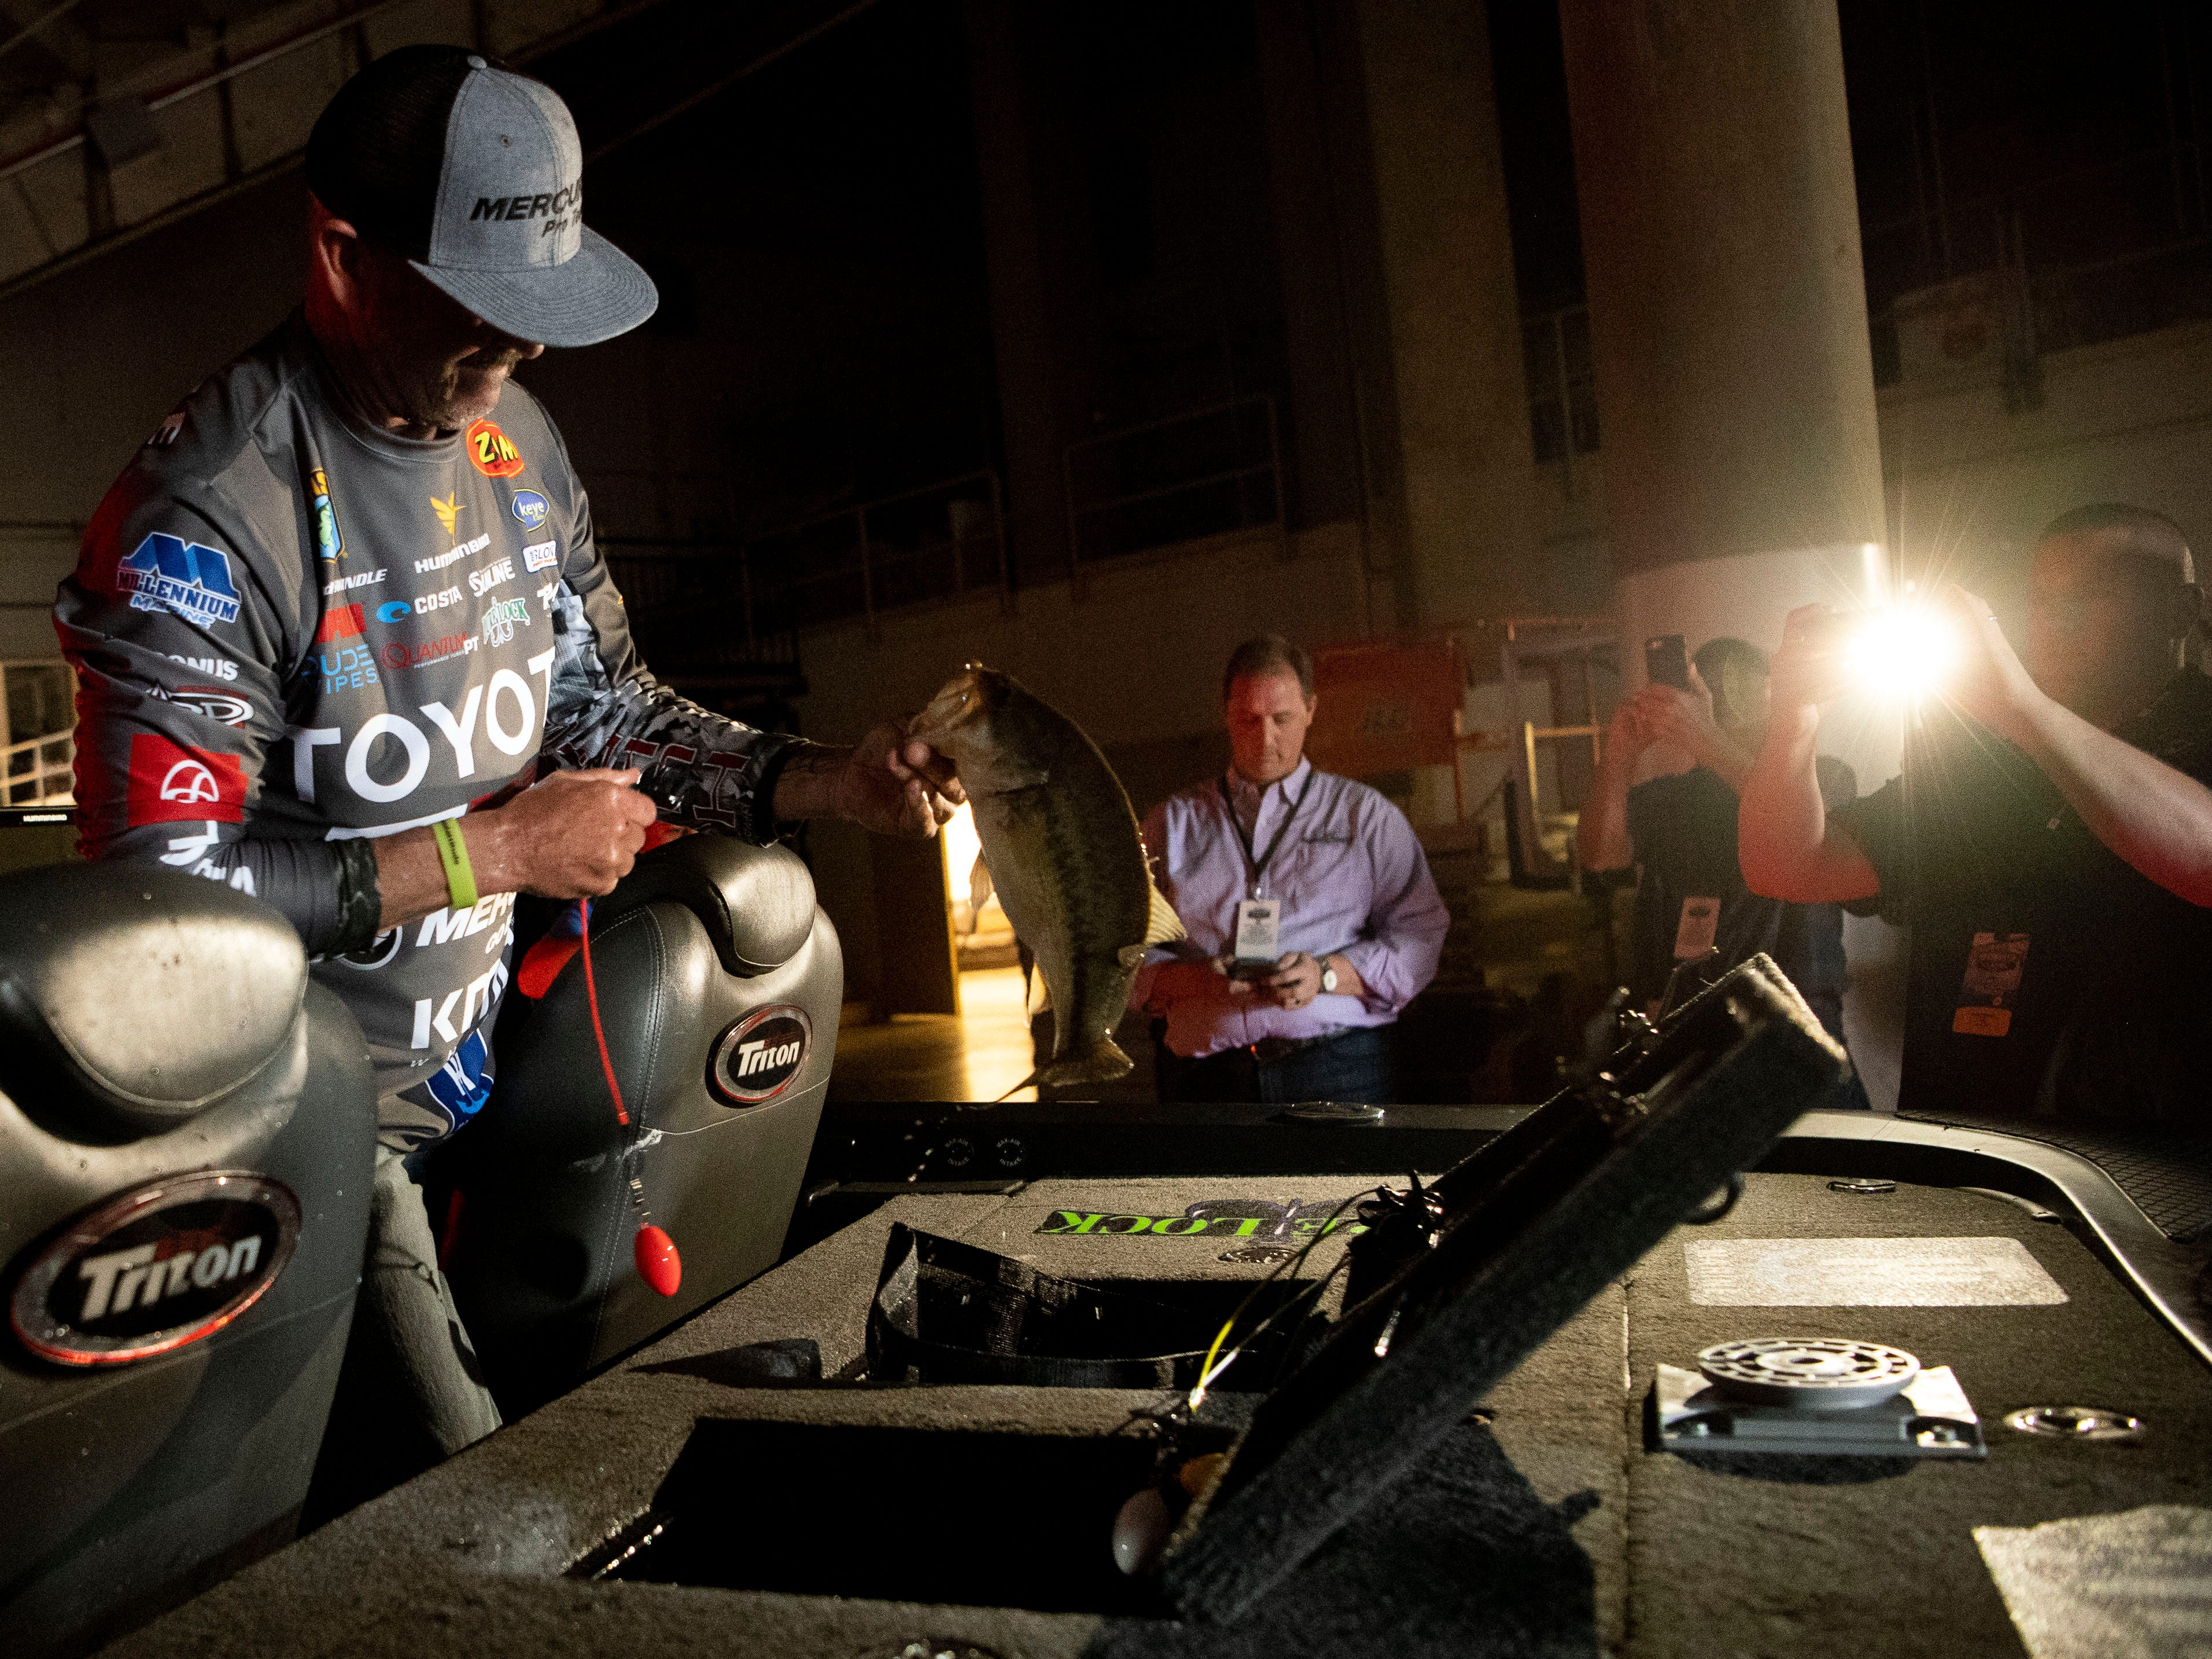 Professional bass fisherman Gerald Swindle prepares his day's catch for weigh-in during the GEICO Bassmaster Classic presented by DICK'S Sporting Goods at Thompson-Boling Arena on Friday, March 15, 2019.